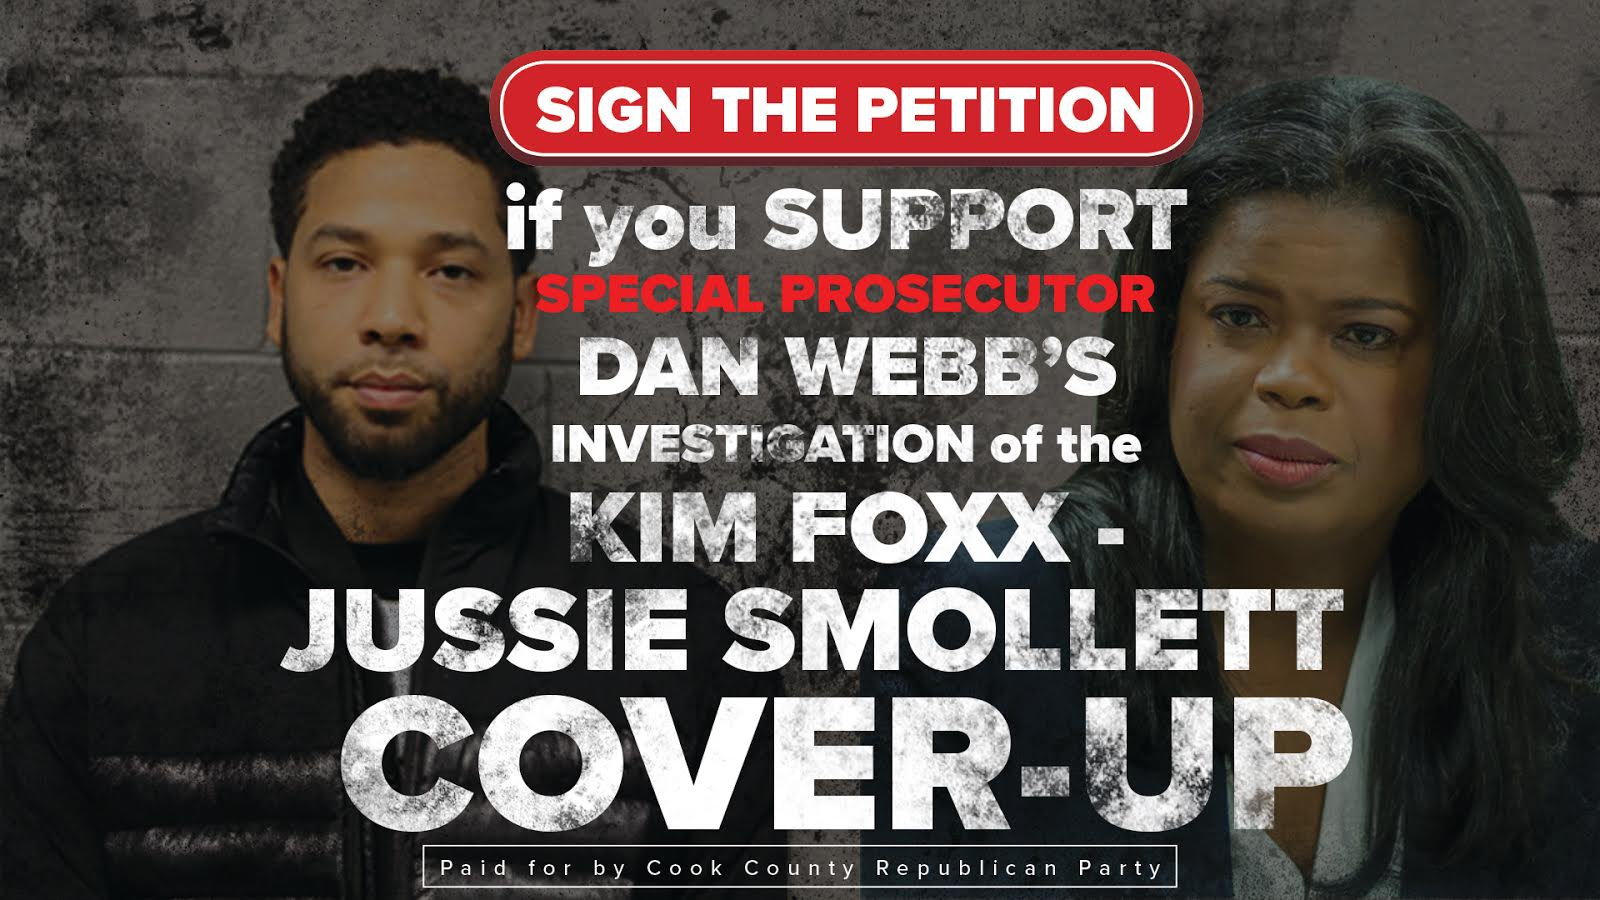 Sign this petition if you support special prosecutor Dan Webb's investigation of the Kim Foxx - Jussie Smollett cover-up.